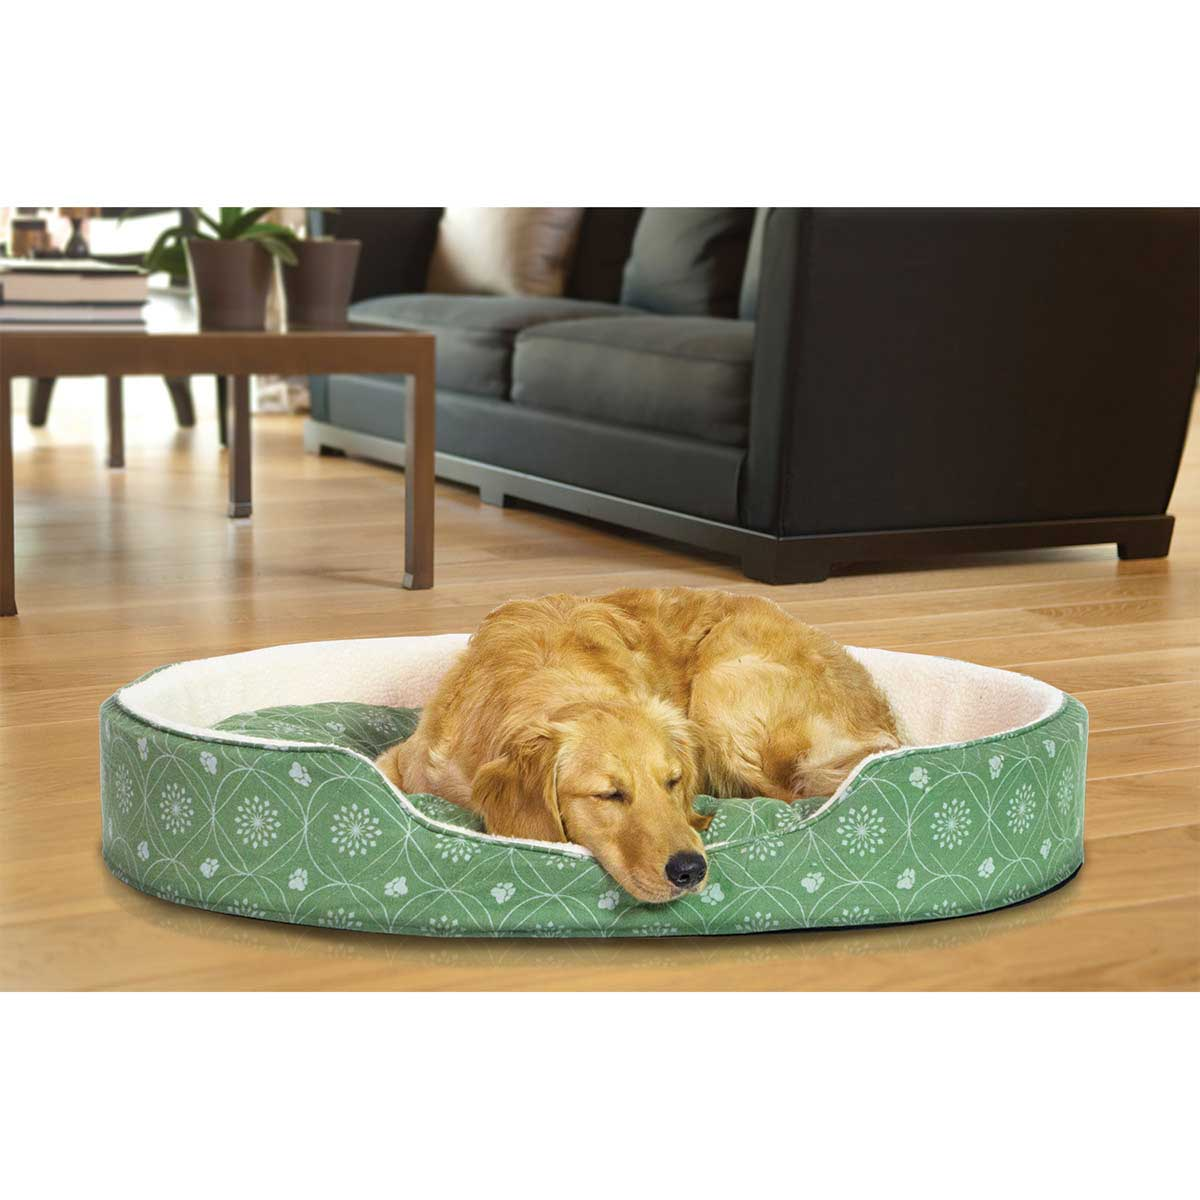 Sleeping Dog in FurHaven Nap Paw Print Decor Flannel Oval Jade Green - 26.5 inches by 30 inches